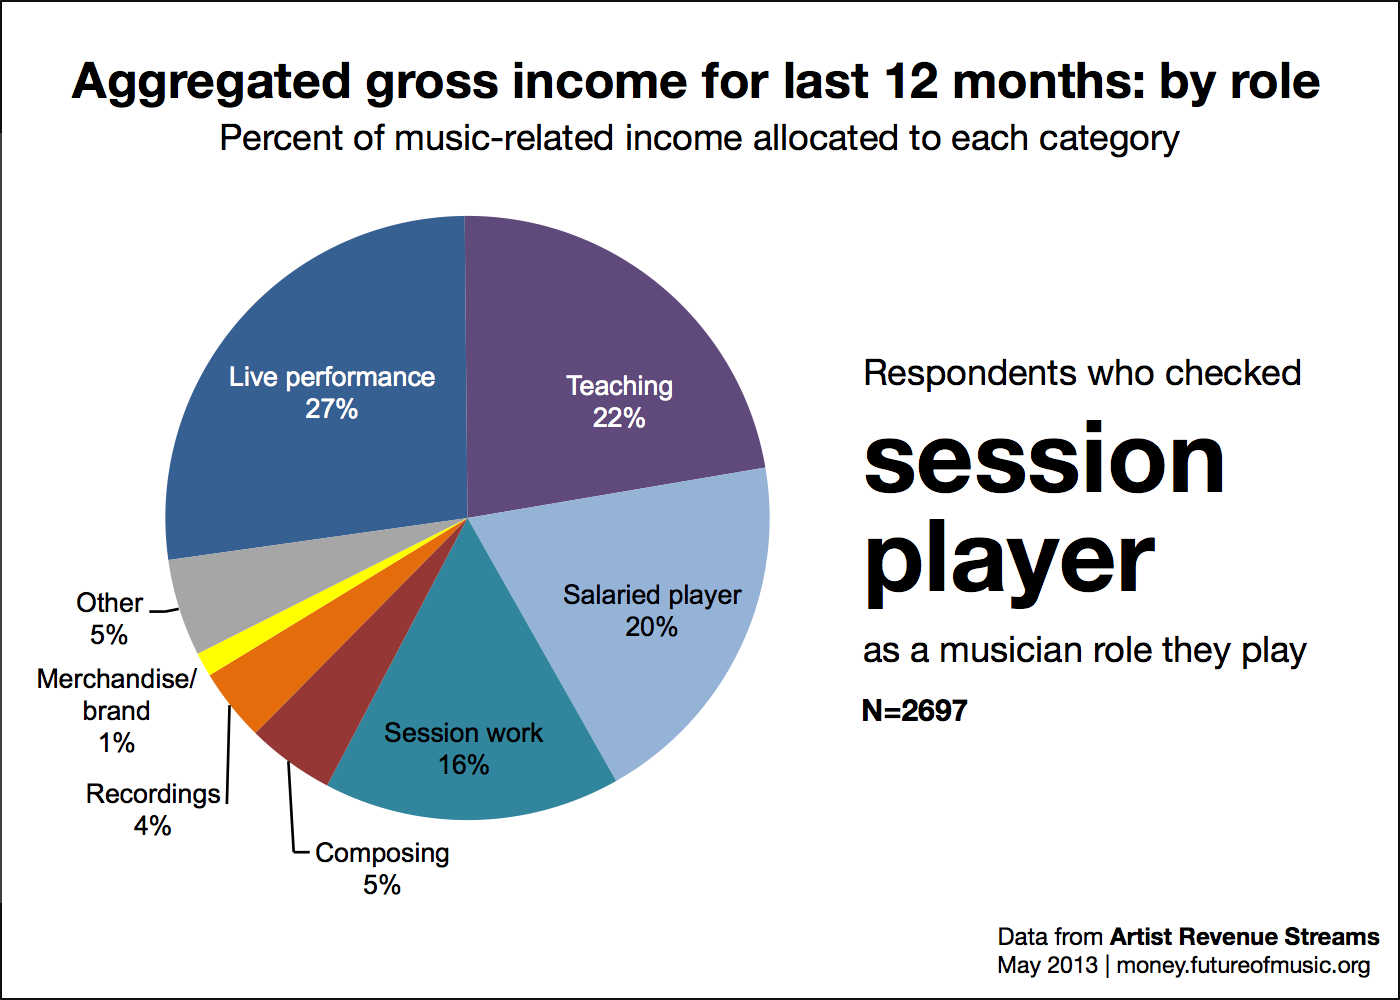 Revenue allocation for role session player